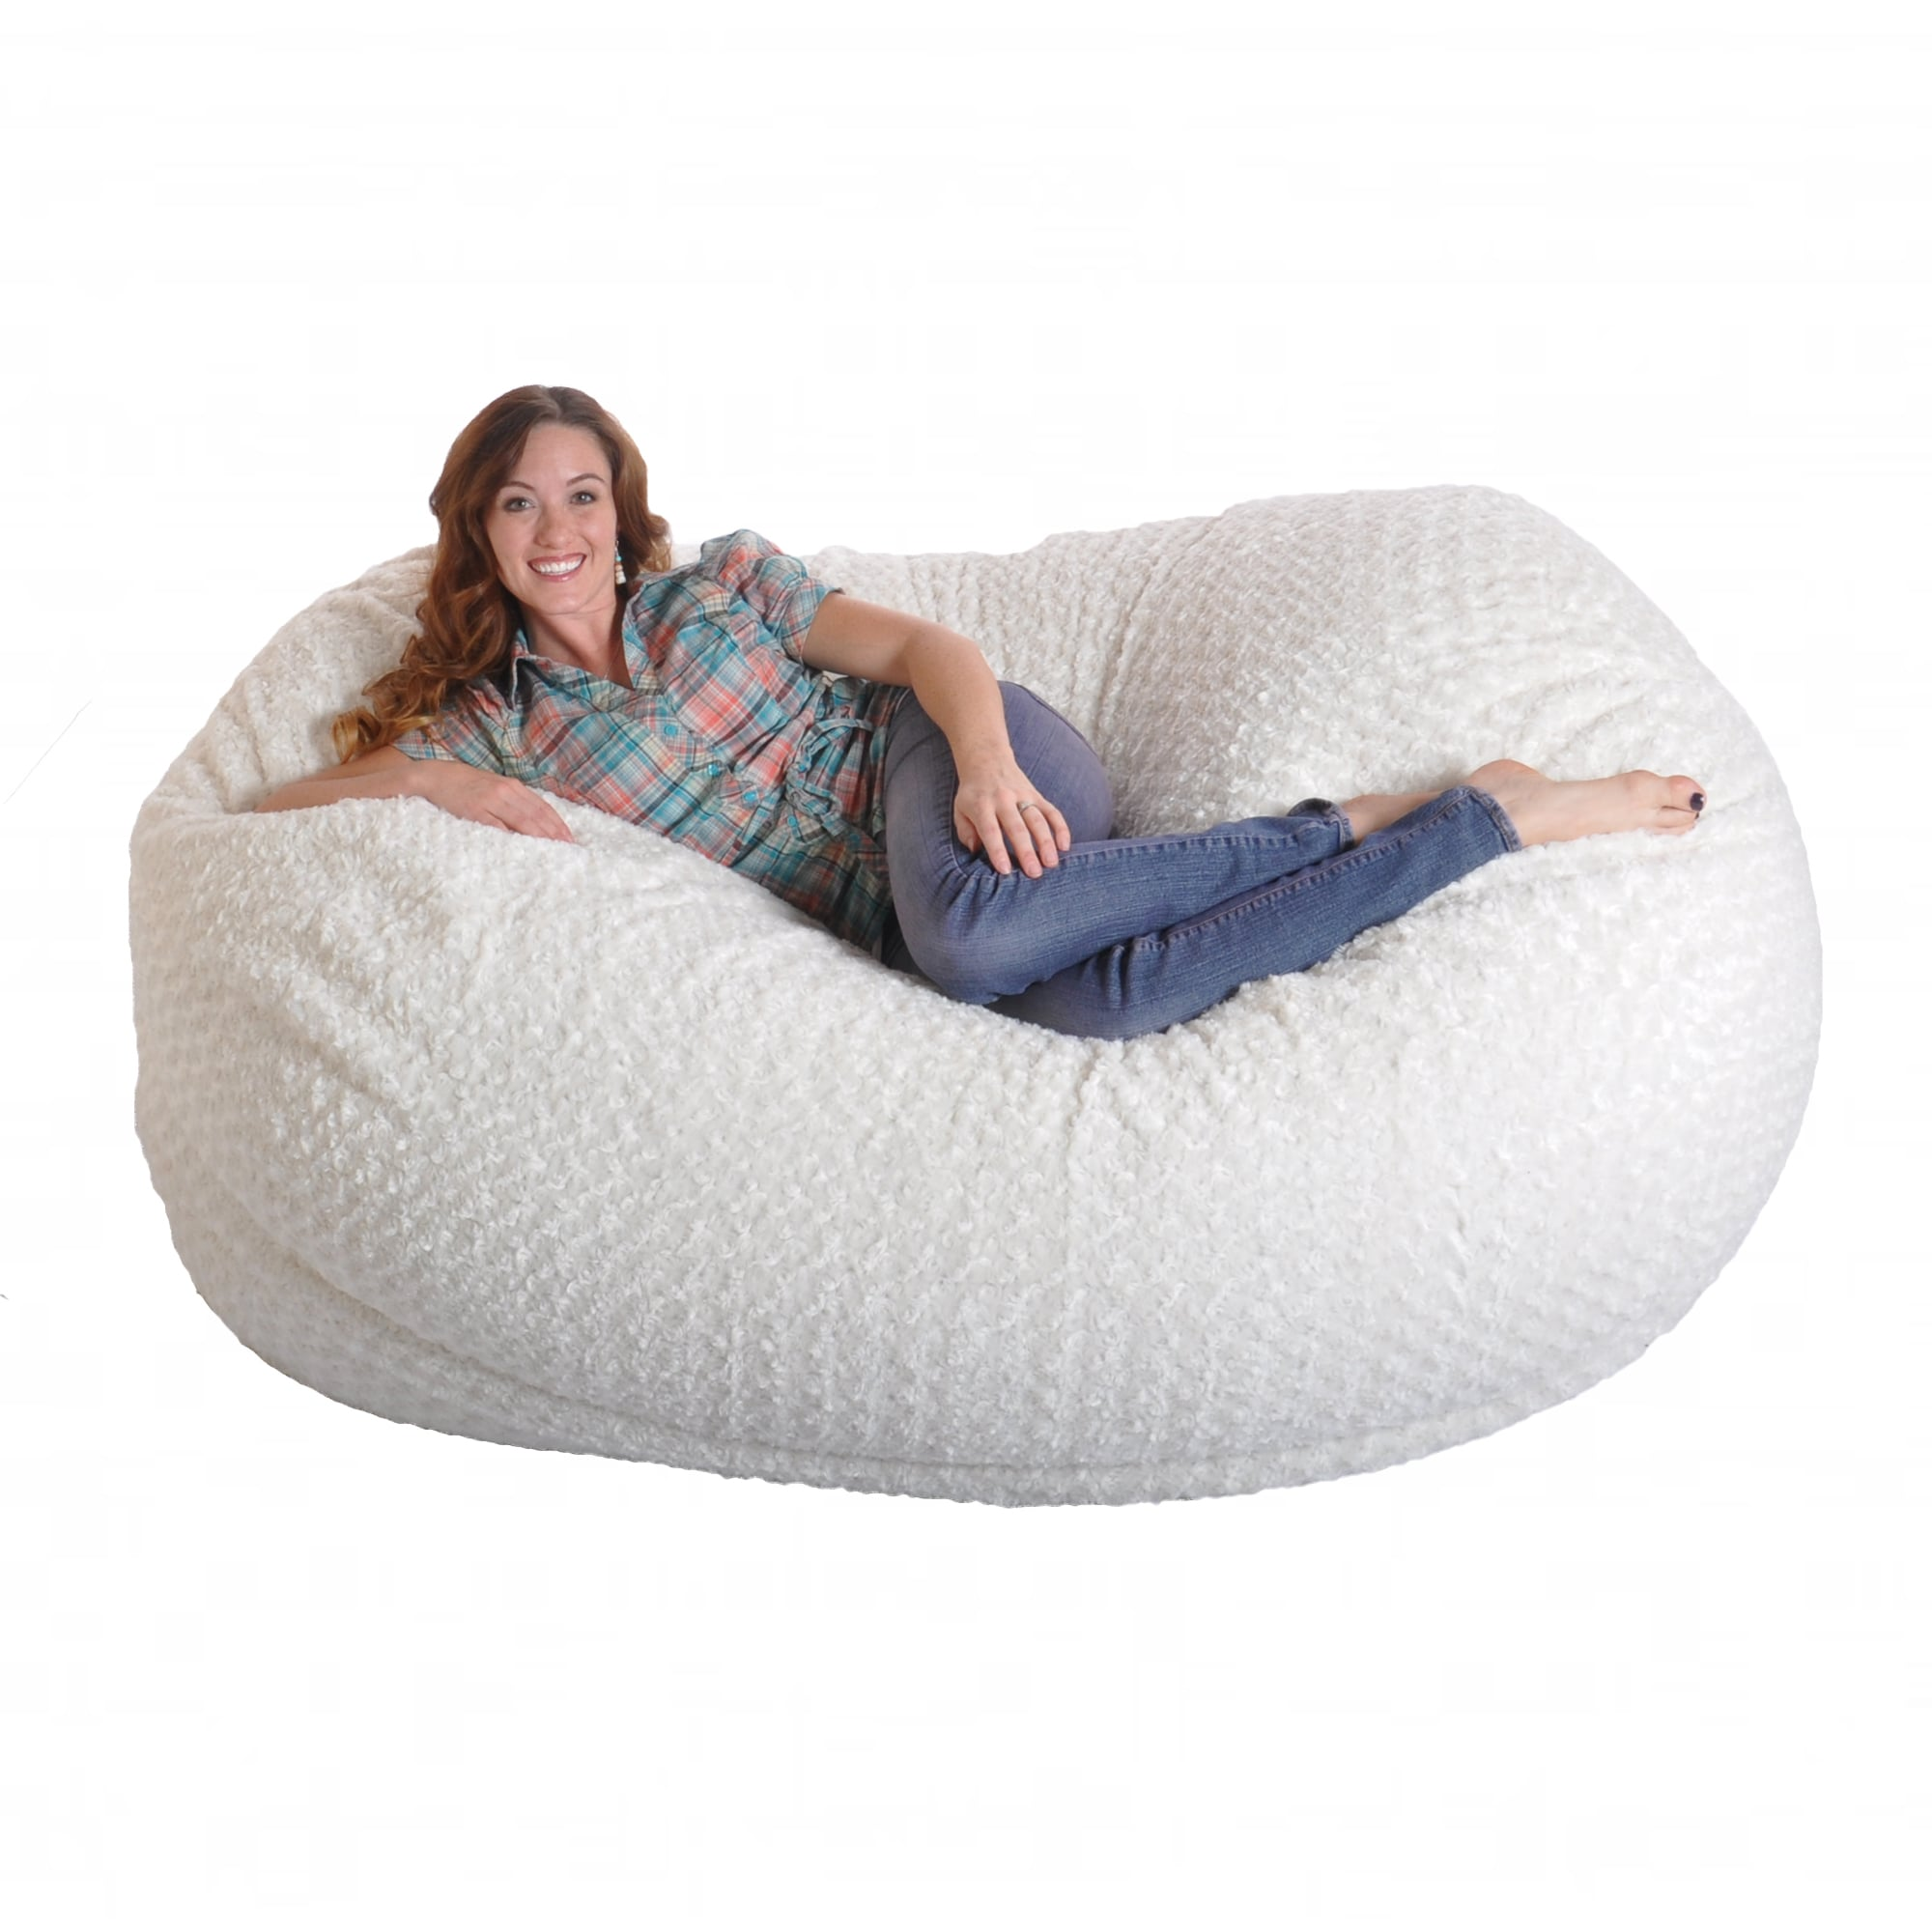 Shop 6 Foot Soft White Fur Large Oval Microfiber Memory Foam Bean Bag Chair On Sale Overstock 8502975